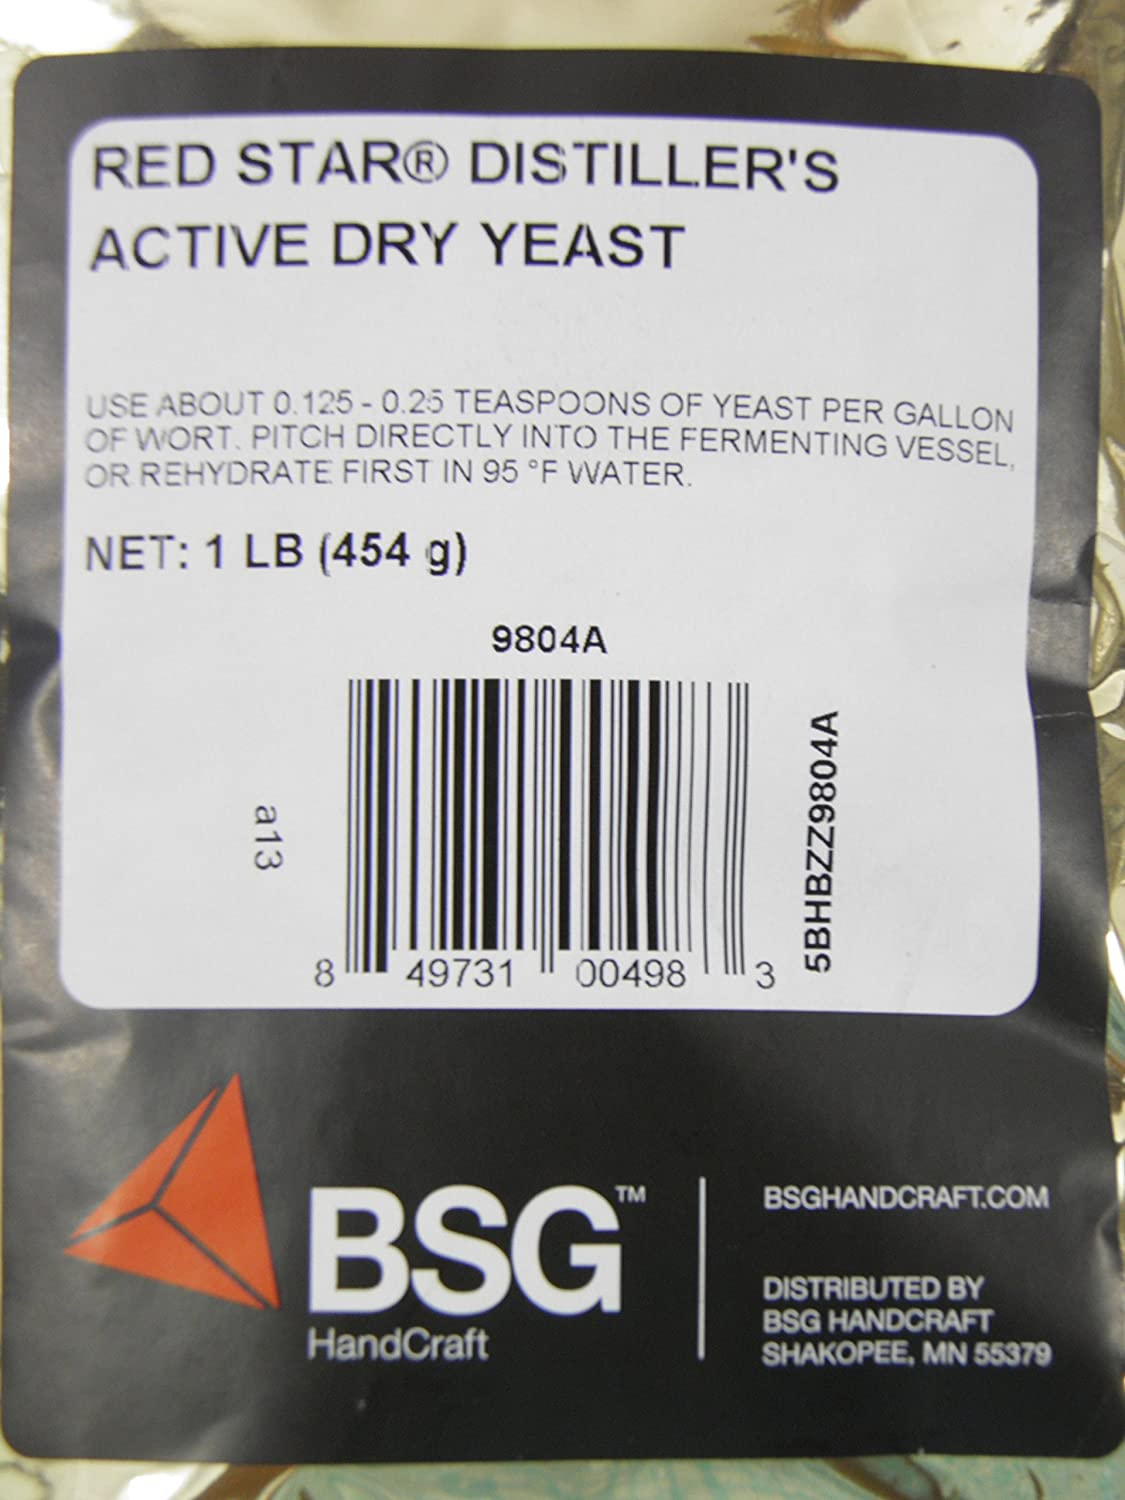 Amazon.com: Distillers Active Dry Yeast - Red Star DADY 1 lb pack: Kitchen & Dining